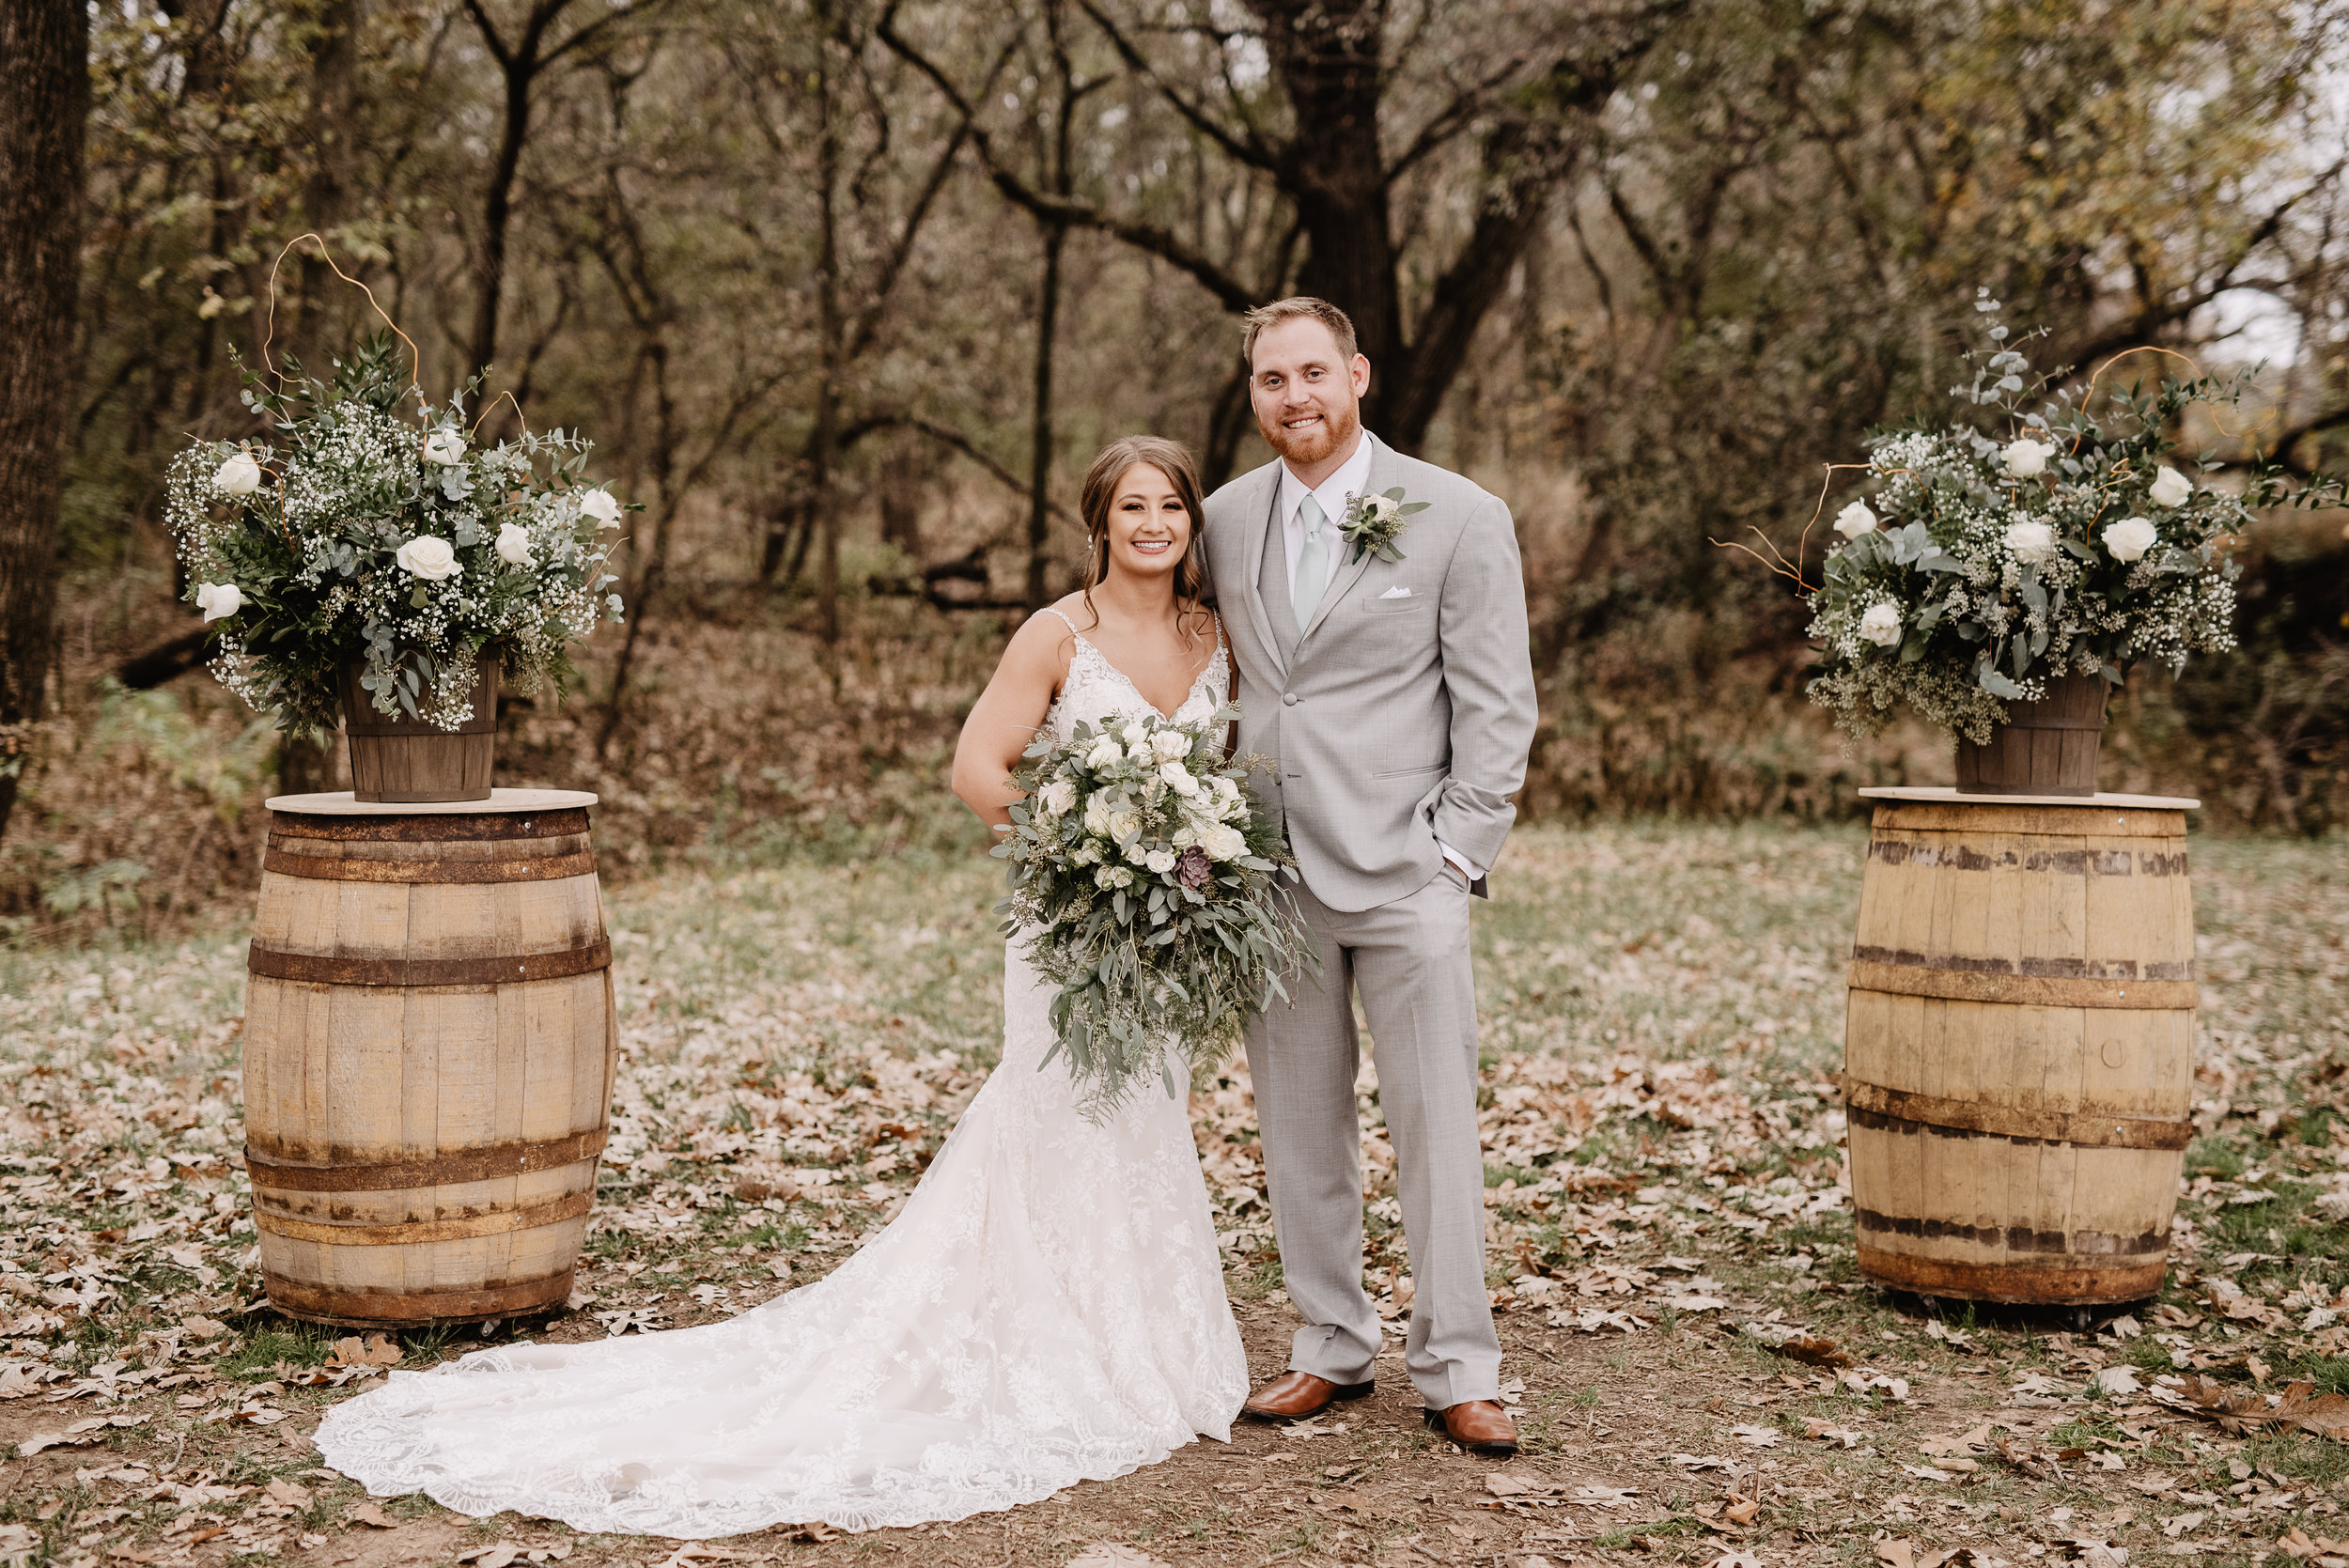 Fulton Valley Farms Wedding, Abby Bindrum & Jordan Sroufe, Wichita Wedding Photographer-54.jpg